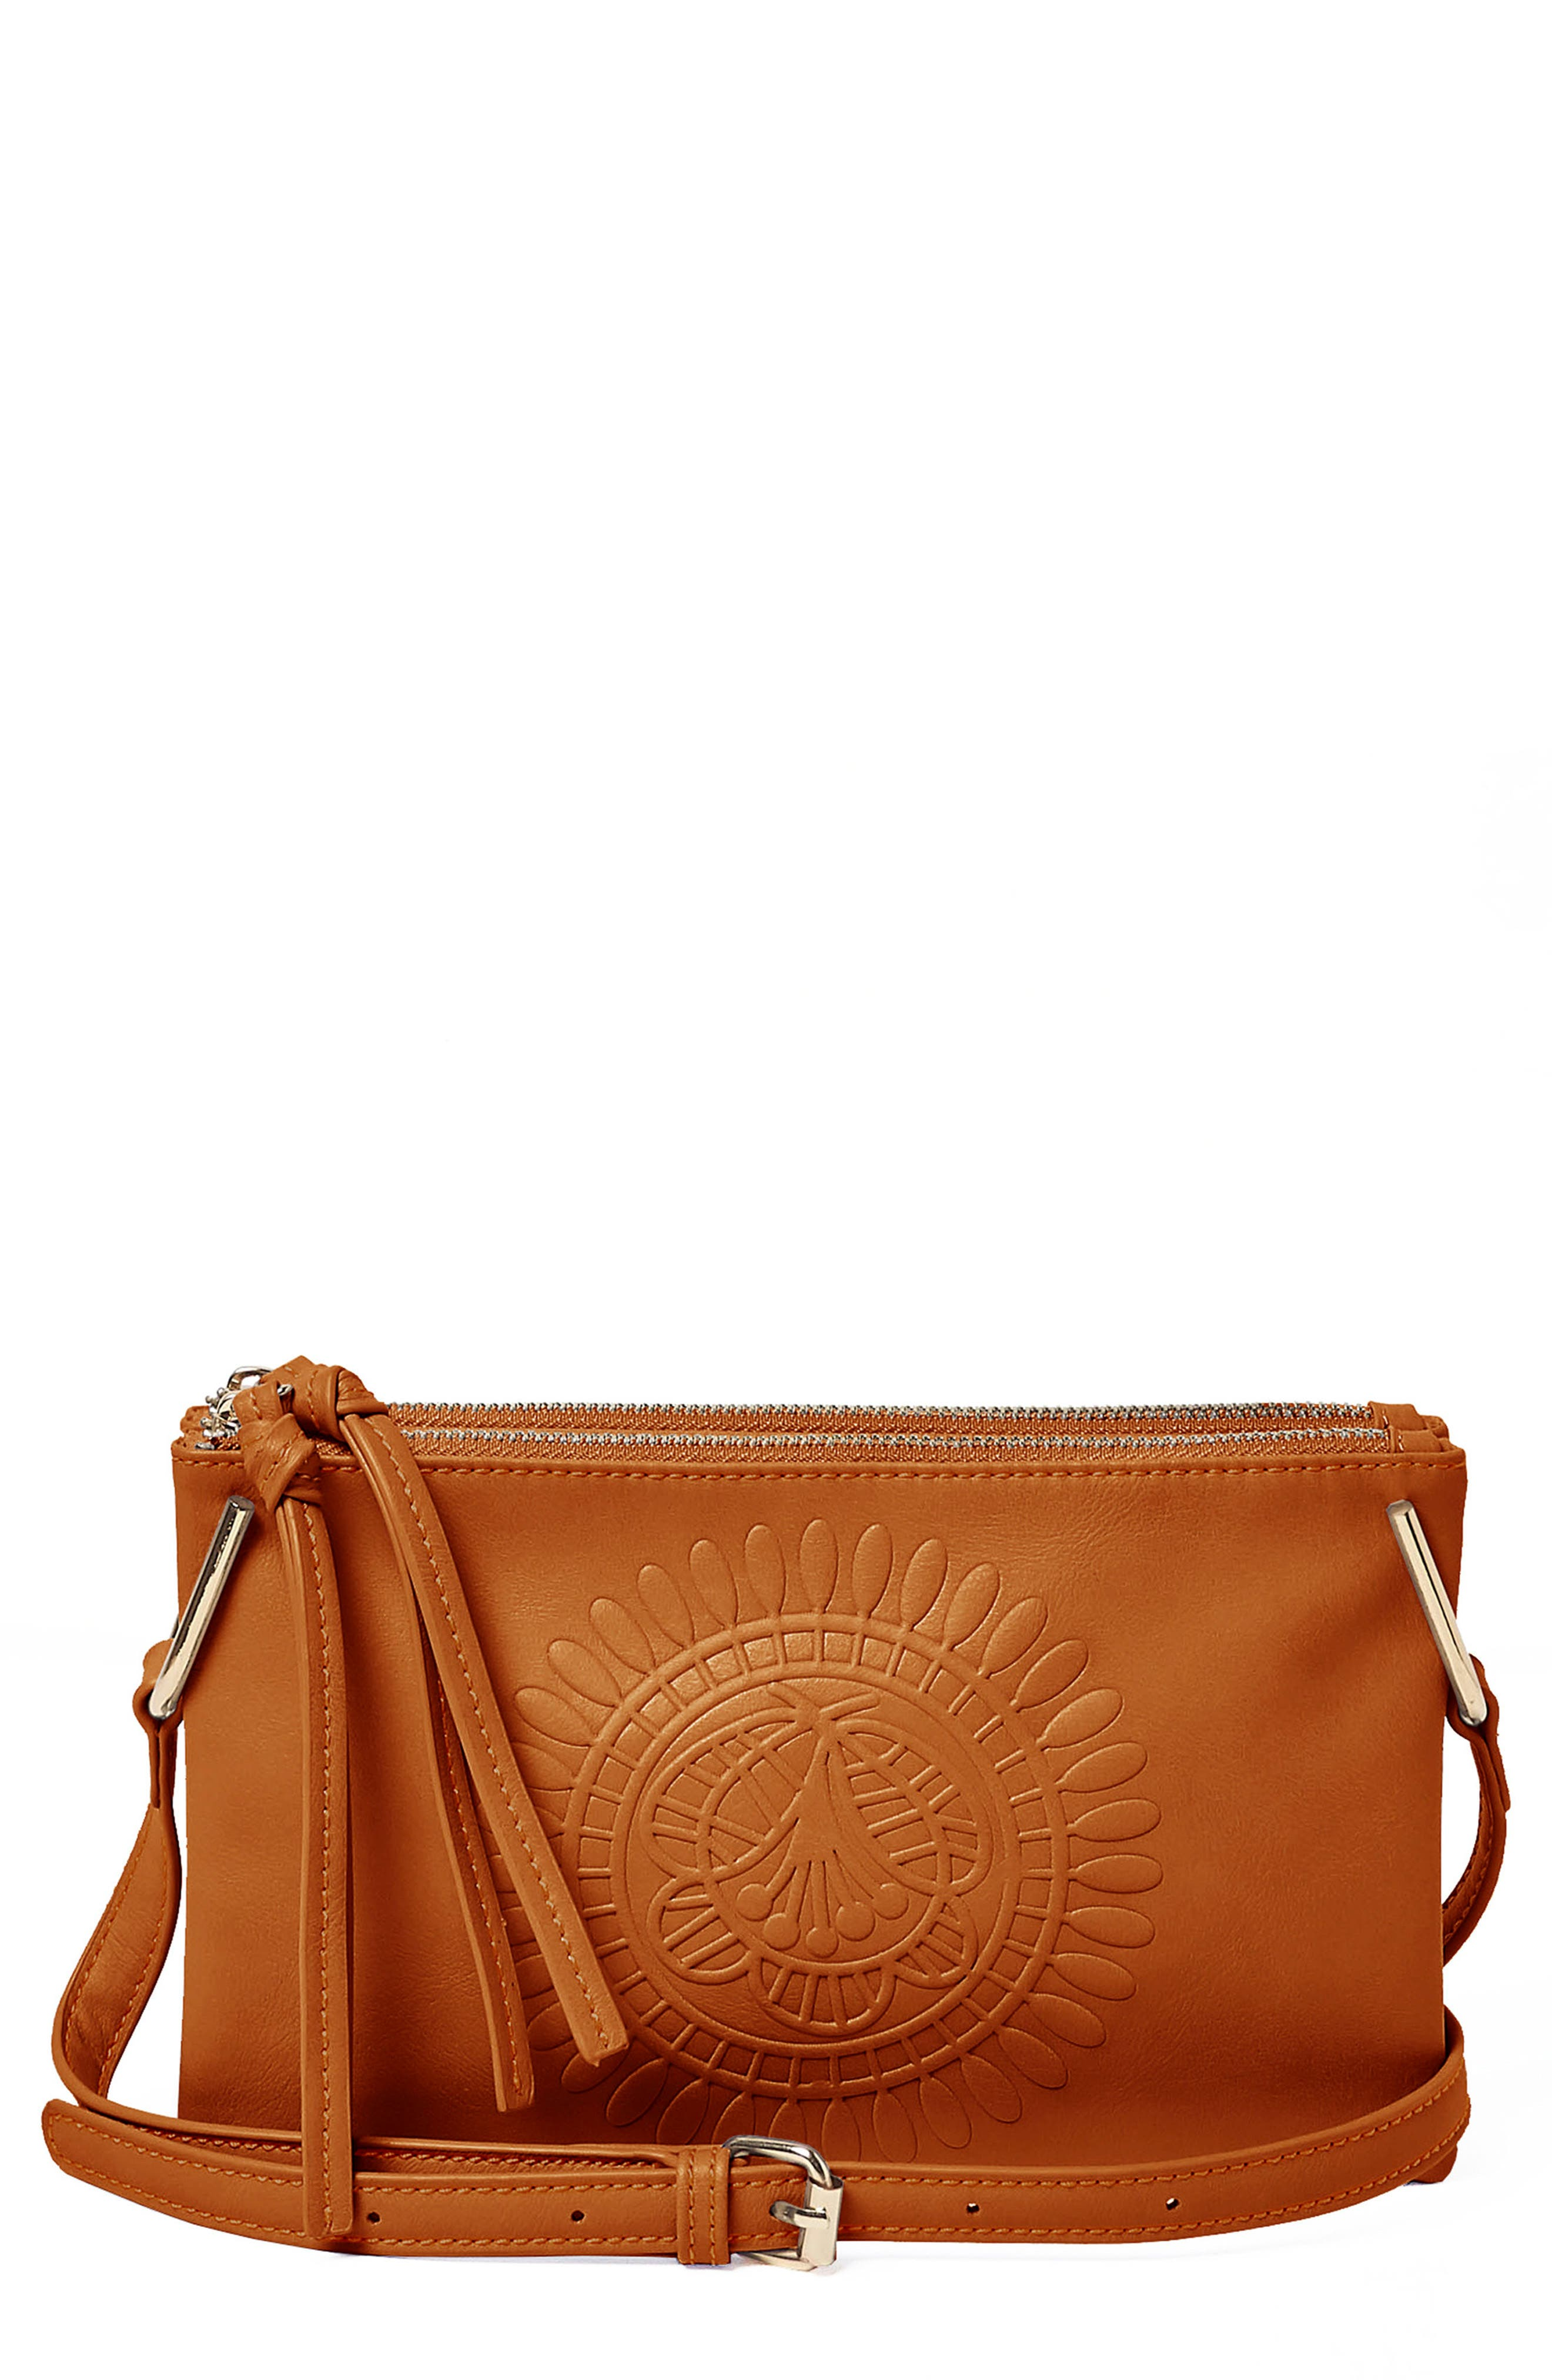 Urban Originals FLOWER VEGAN LEATHER CROSSBODY BAG - BROWN